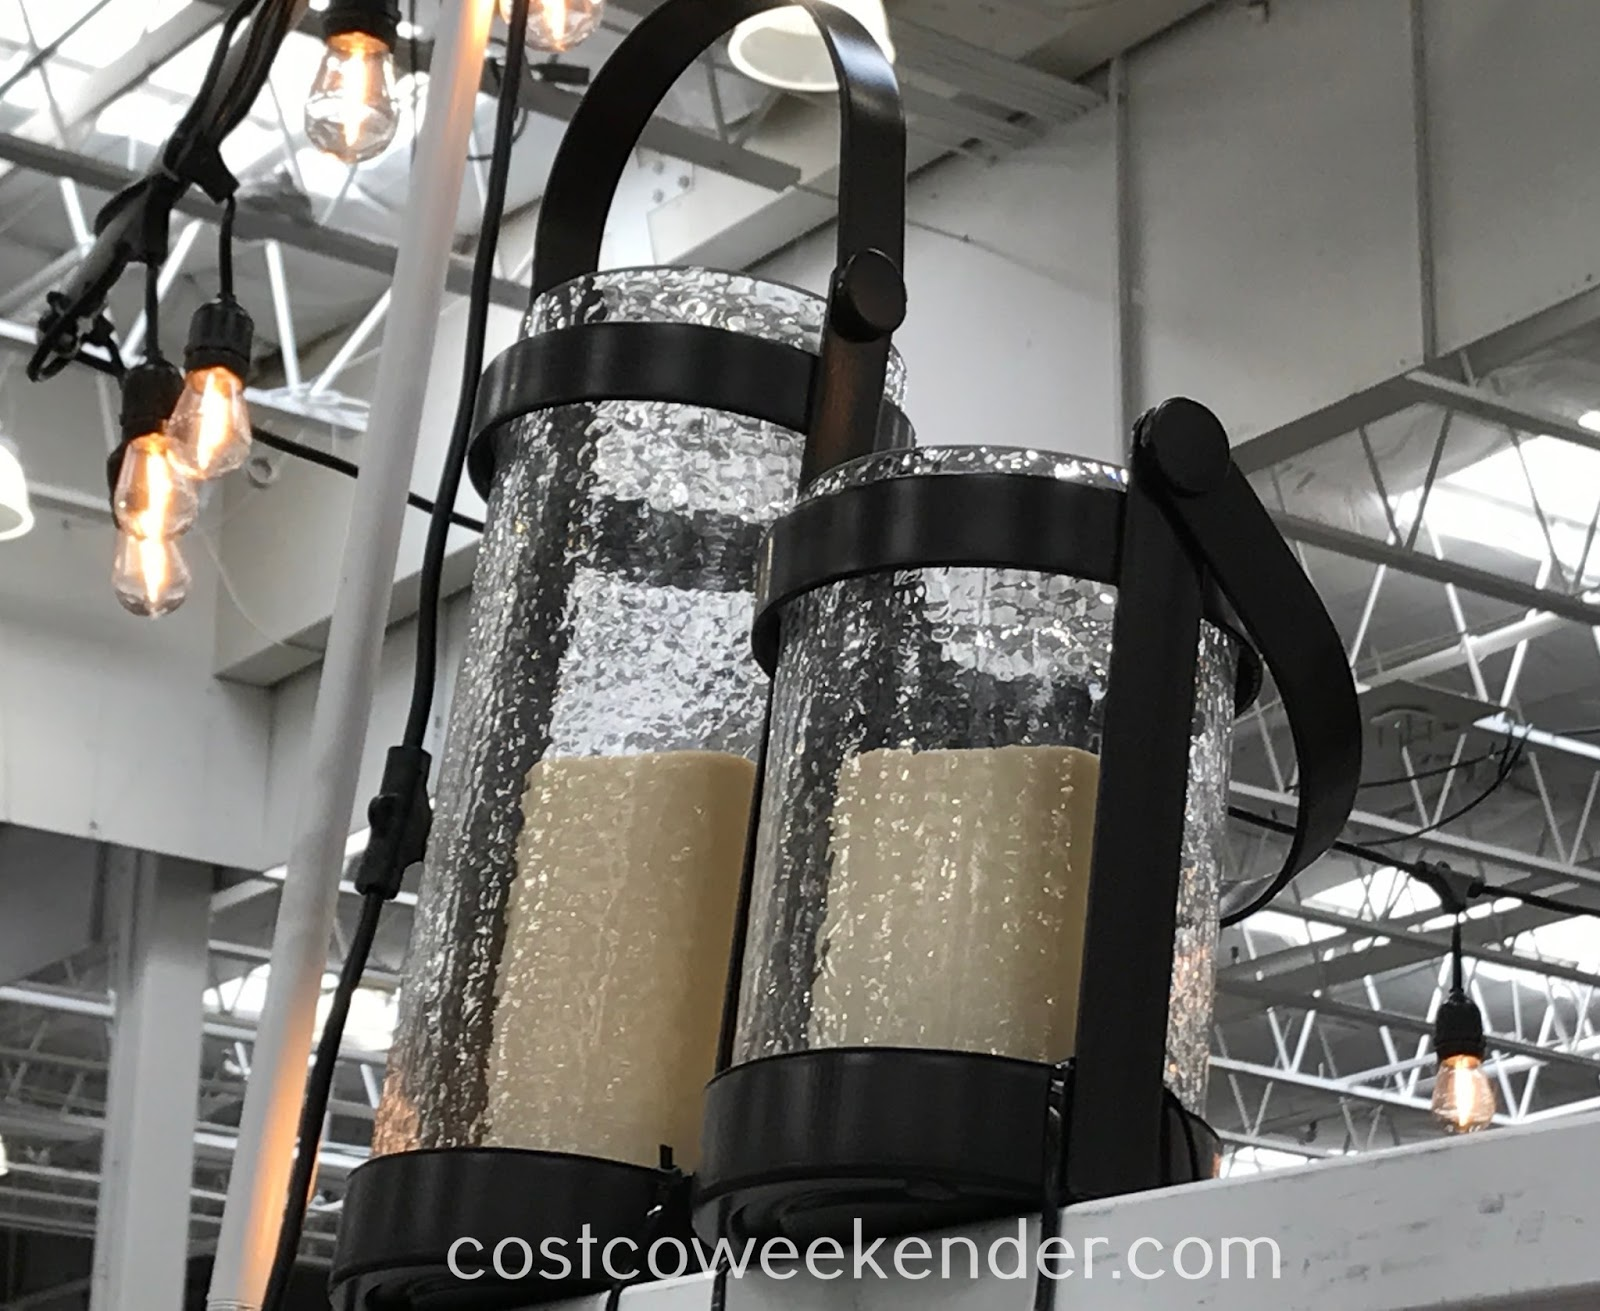 Light up any room with the Inside Outside Garden Hurricane Lanterns